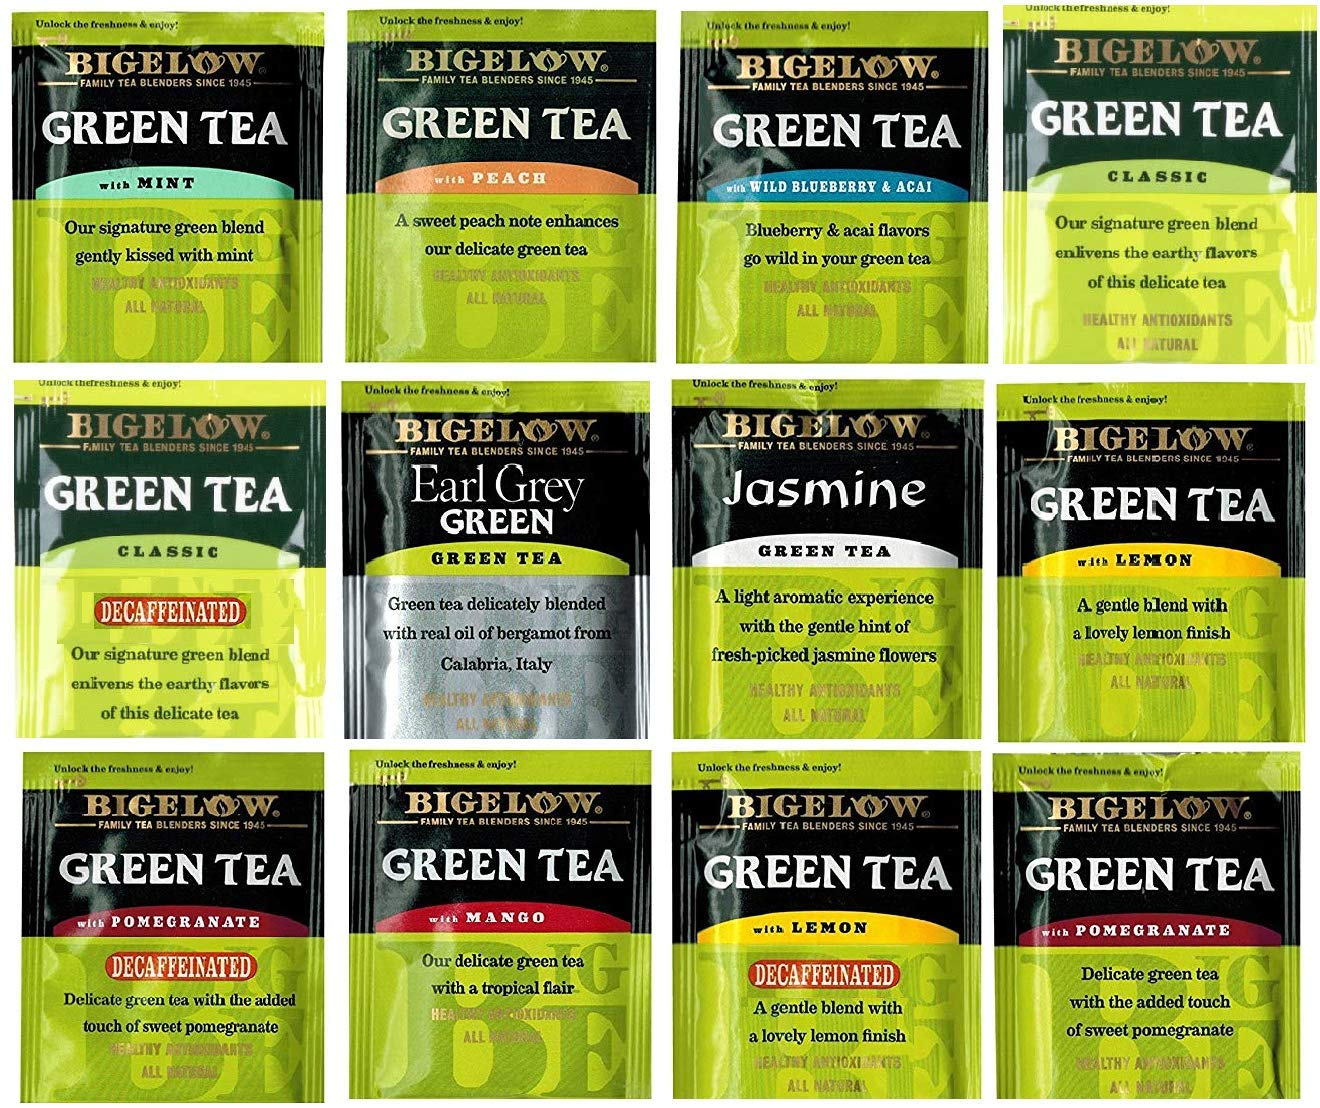 BIGELOW Tea Assorted Sampler Gift Box- 120 Individually Foil Wrapped Bags, 40 Different Flavors : Green Teas, Herbal Teas, Black Teas, Bigelow Benefits Teas and More. The Perfect Gift Set by ONDAGO (Image #2)